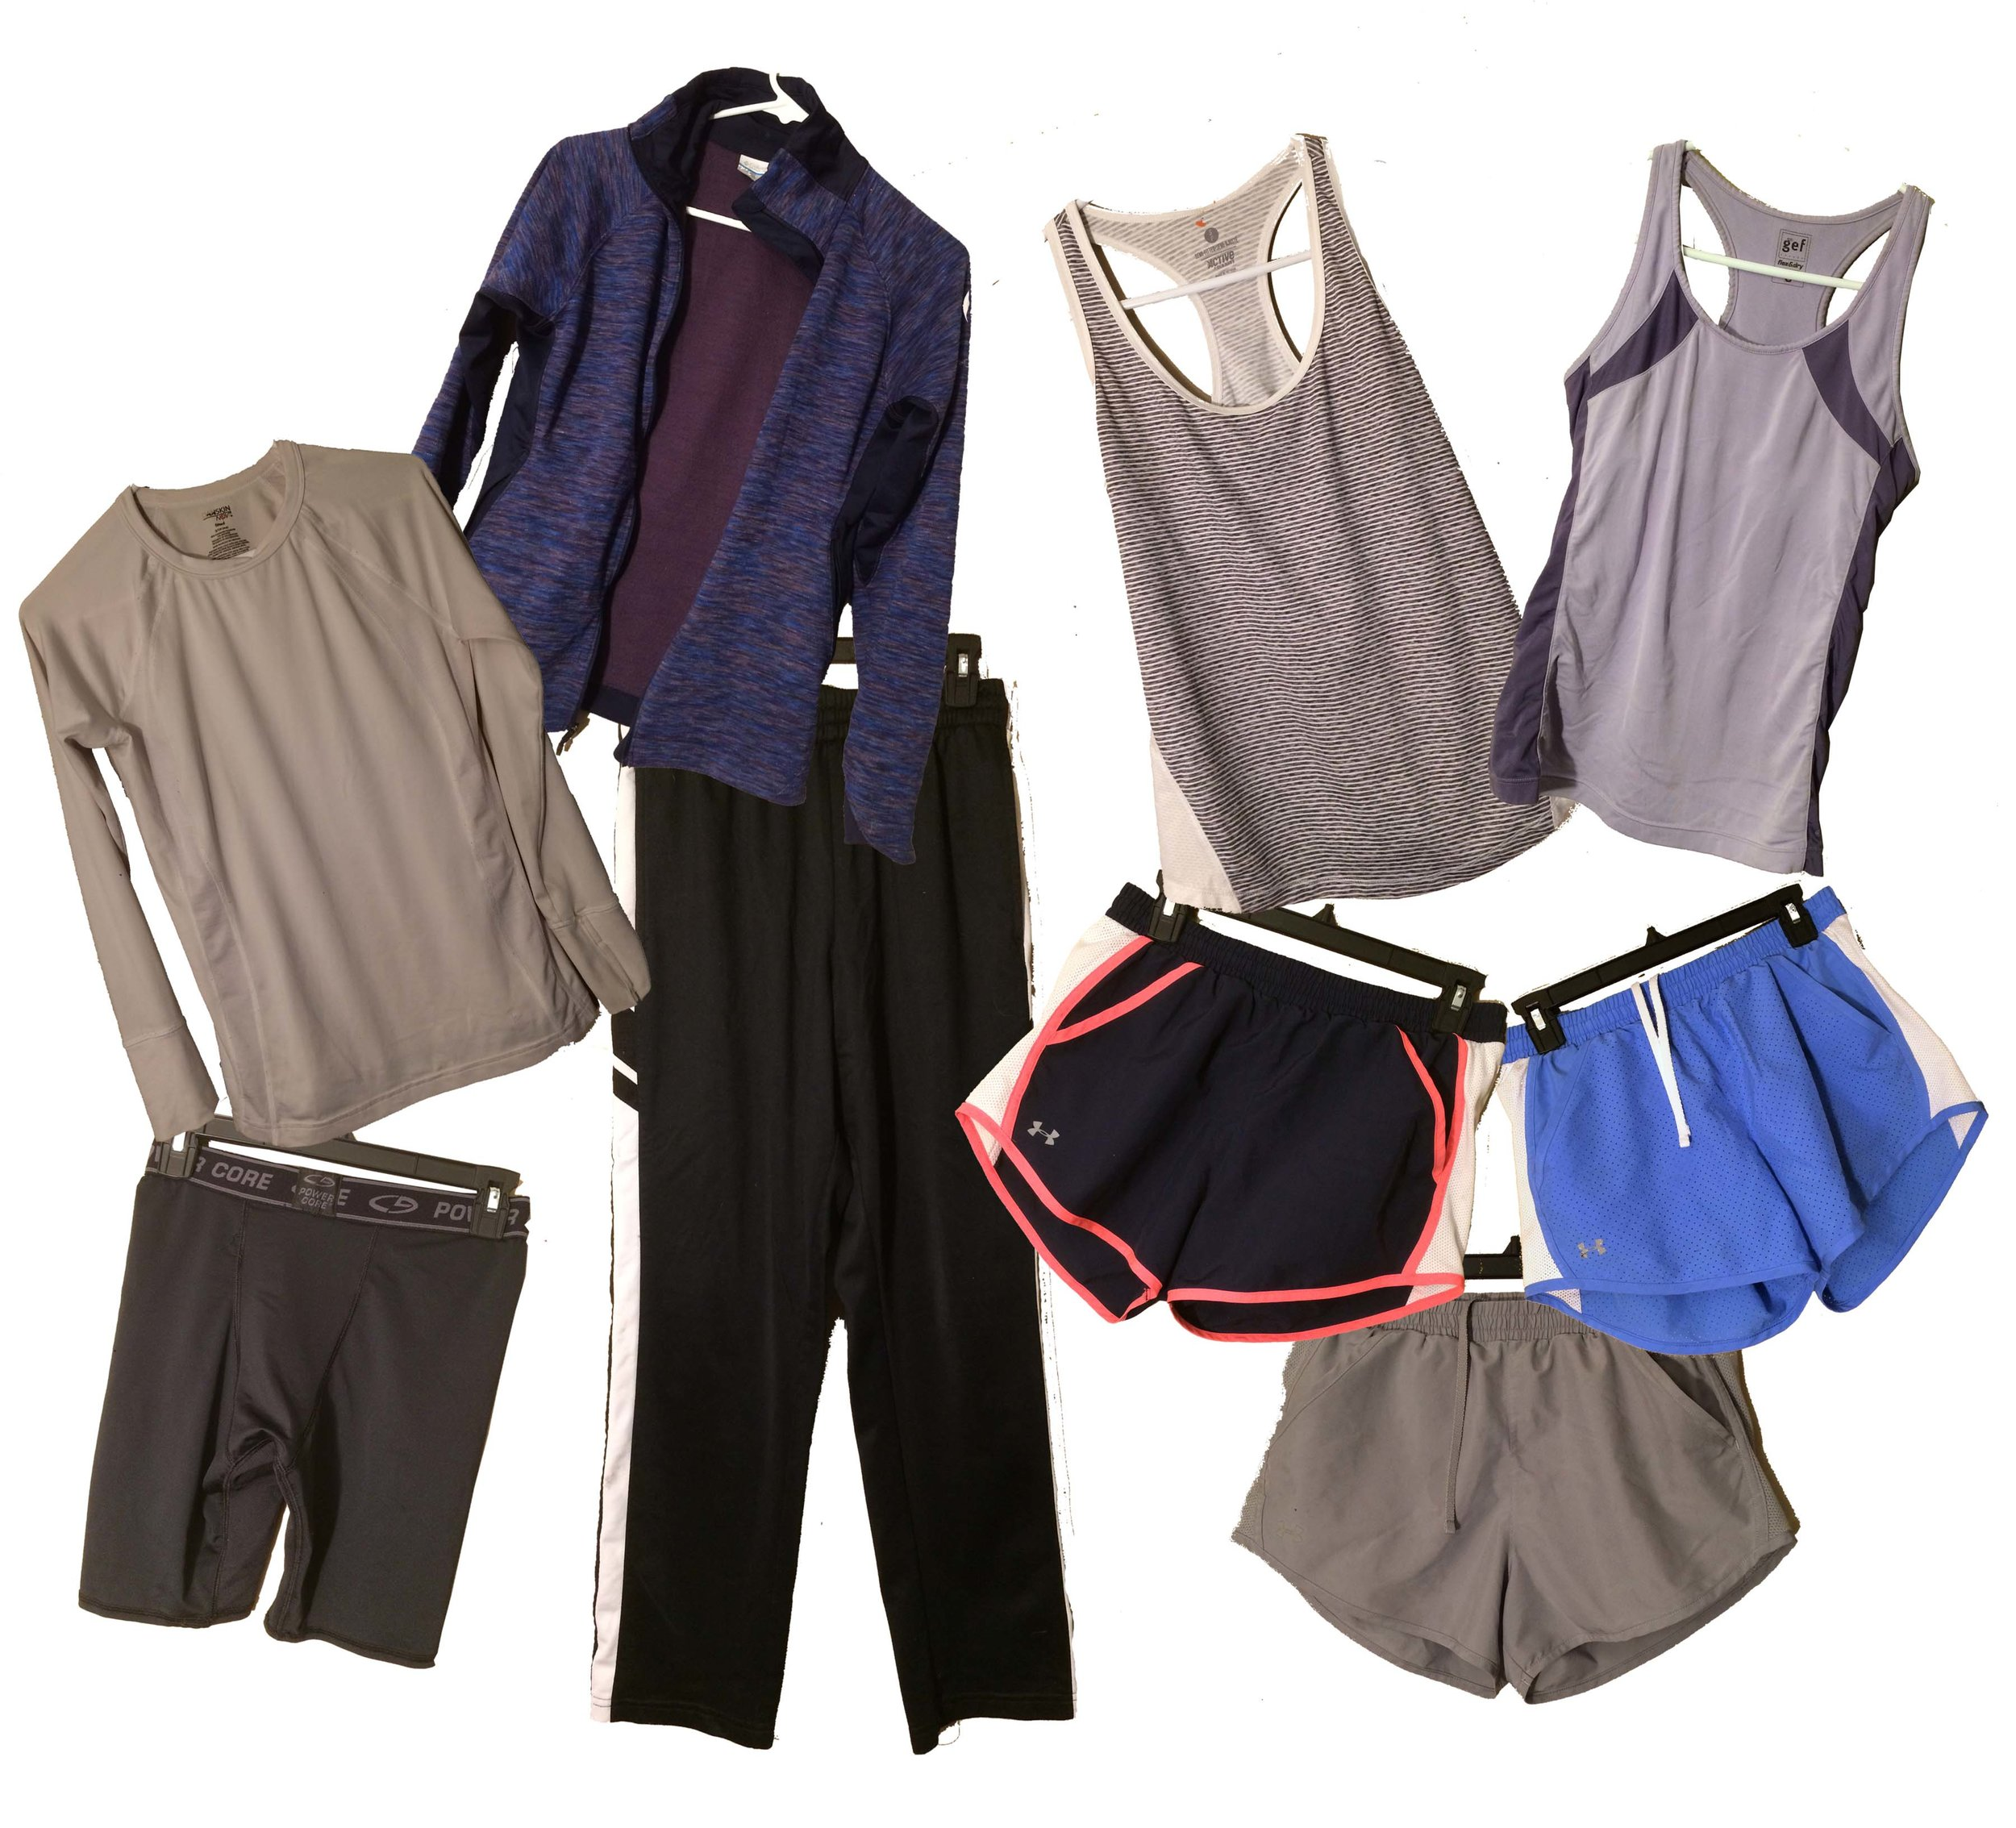 Active Wear - I only wear this if I'm going to the gym or going for a run. In the winter, I include jogging pants, jacket, compression shorts, and an